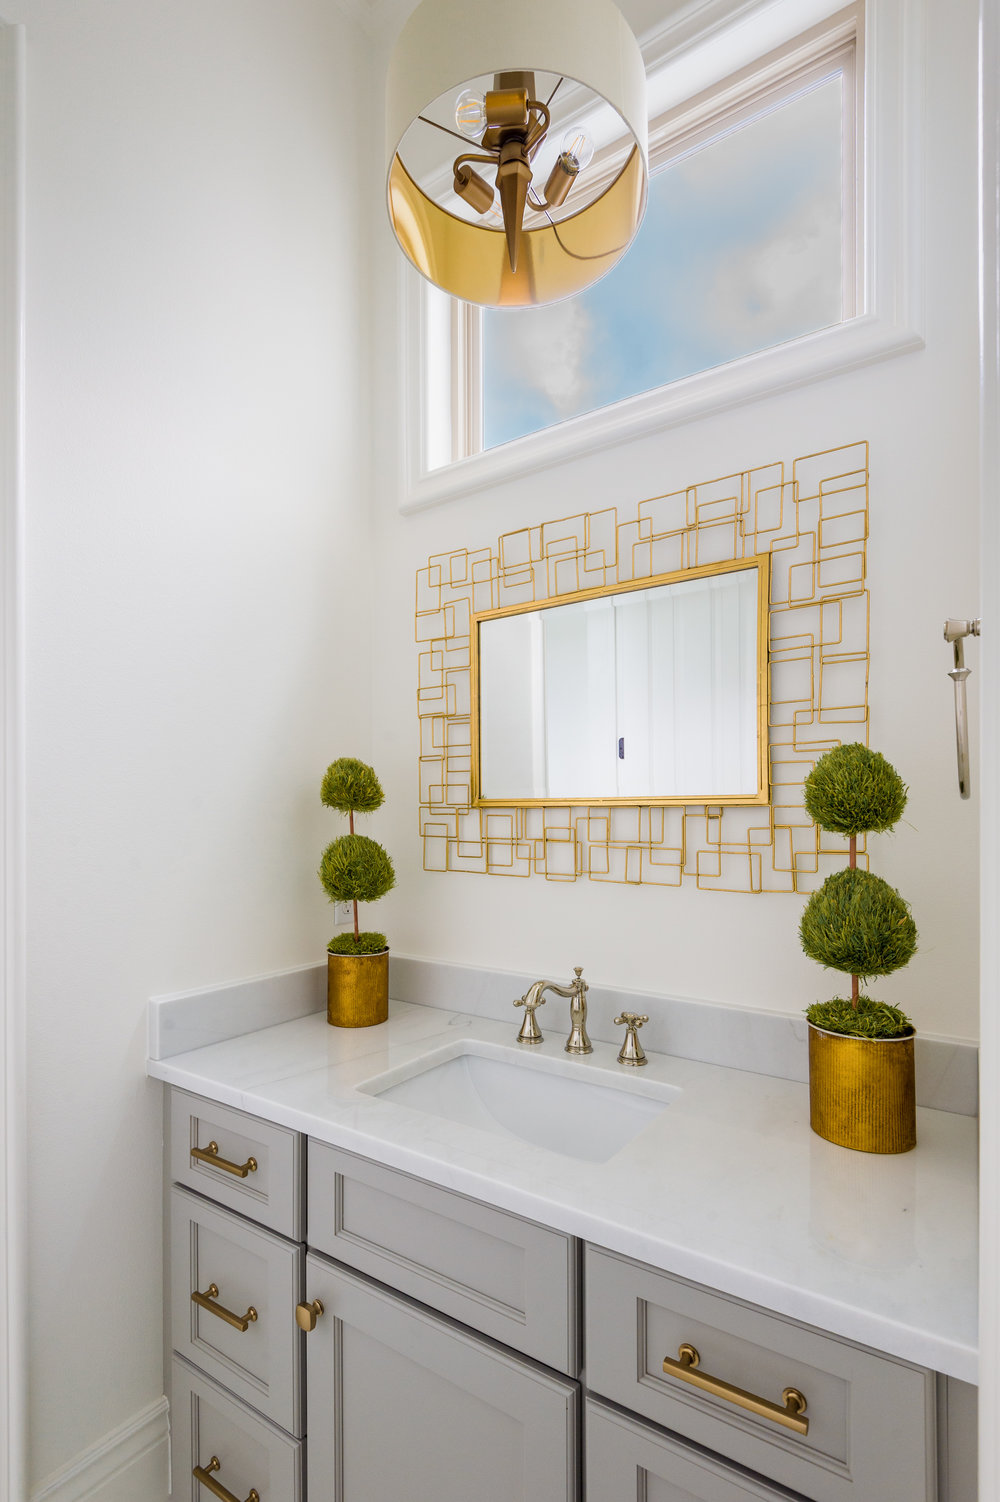 KHB Interiors bathroom metairie interior designer new orleans interior decorator river ridge bathroom renovation holl.jpg